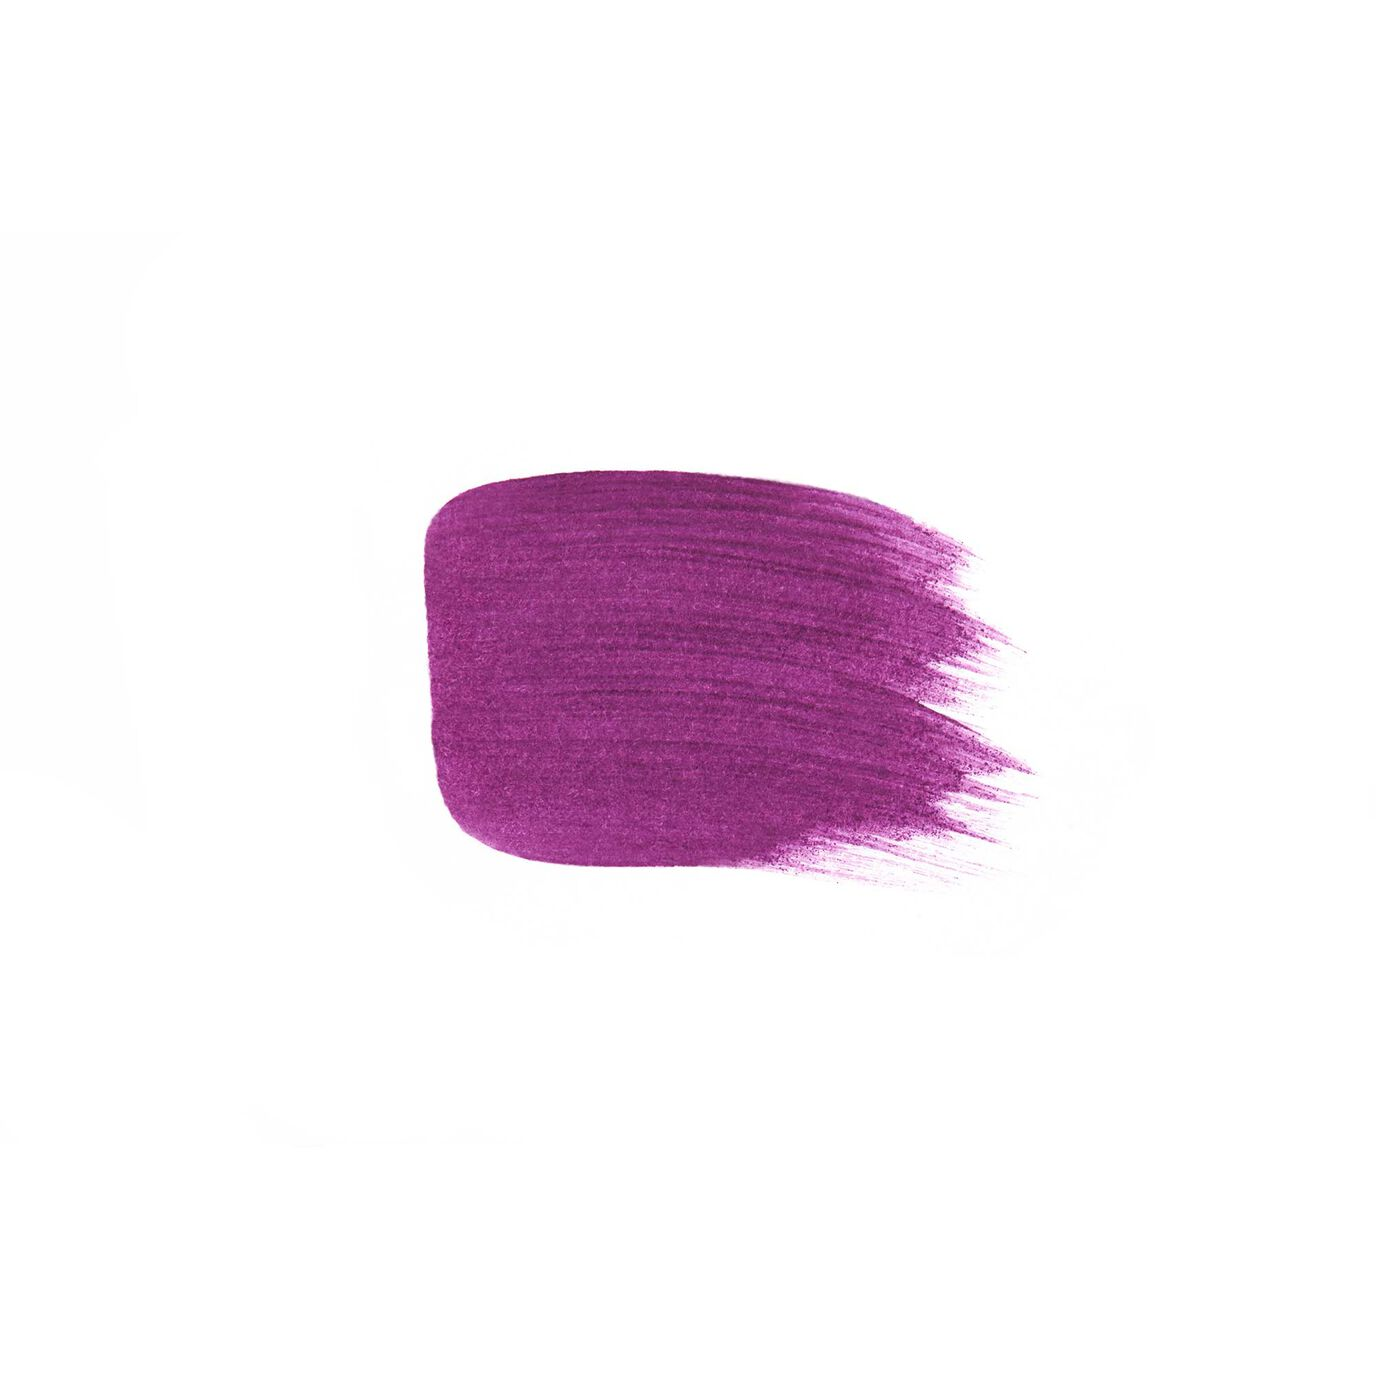 Lip Stain - Orchid